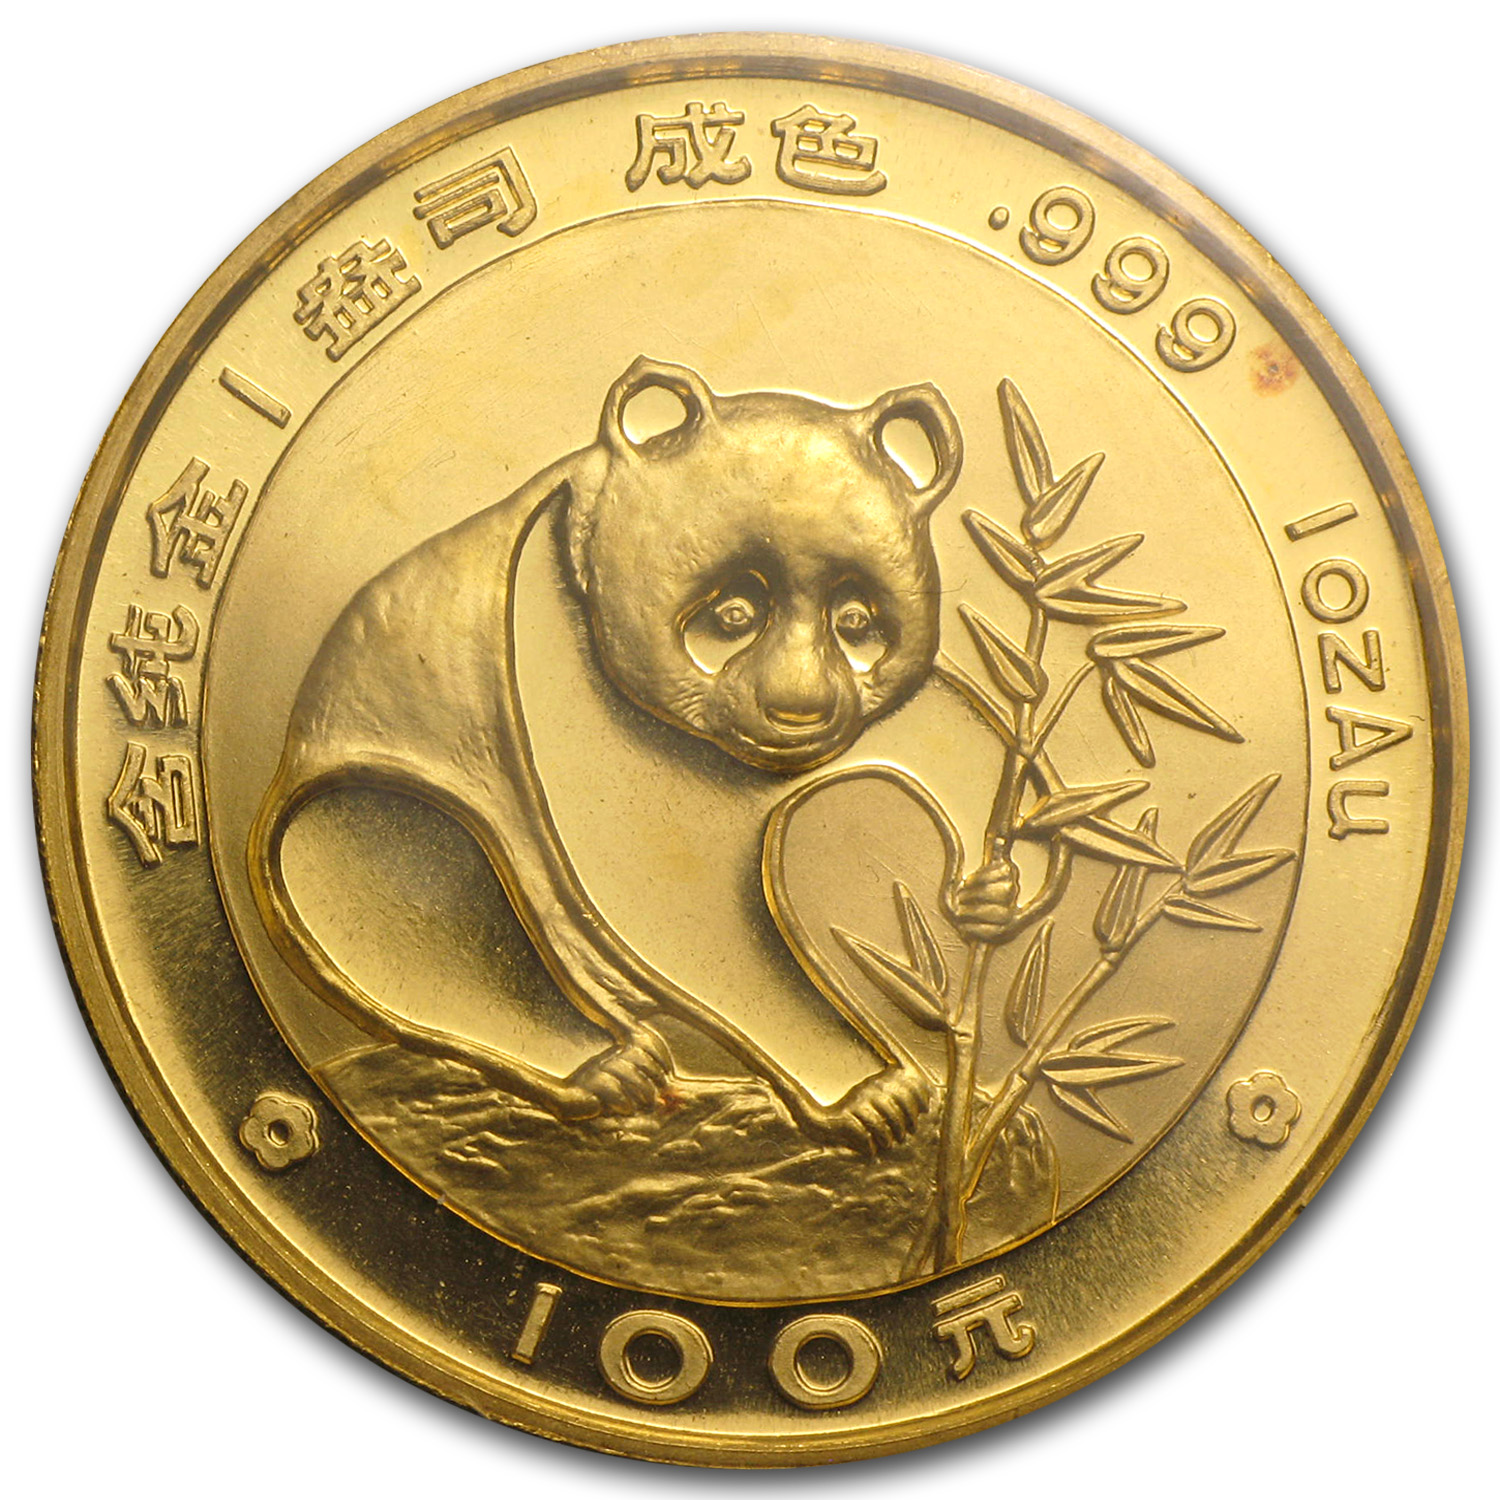 1988 1 oz Gold Chinese Panda BU (Sealed)